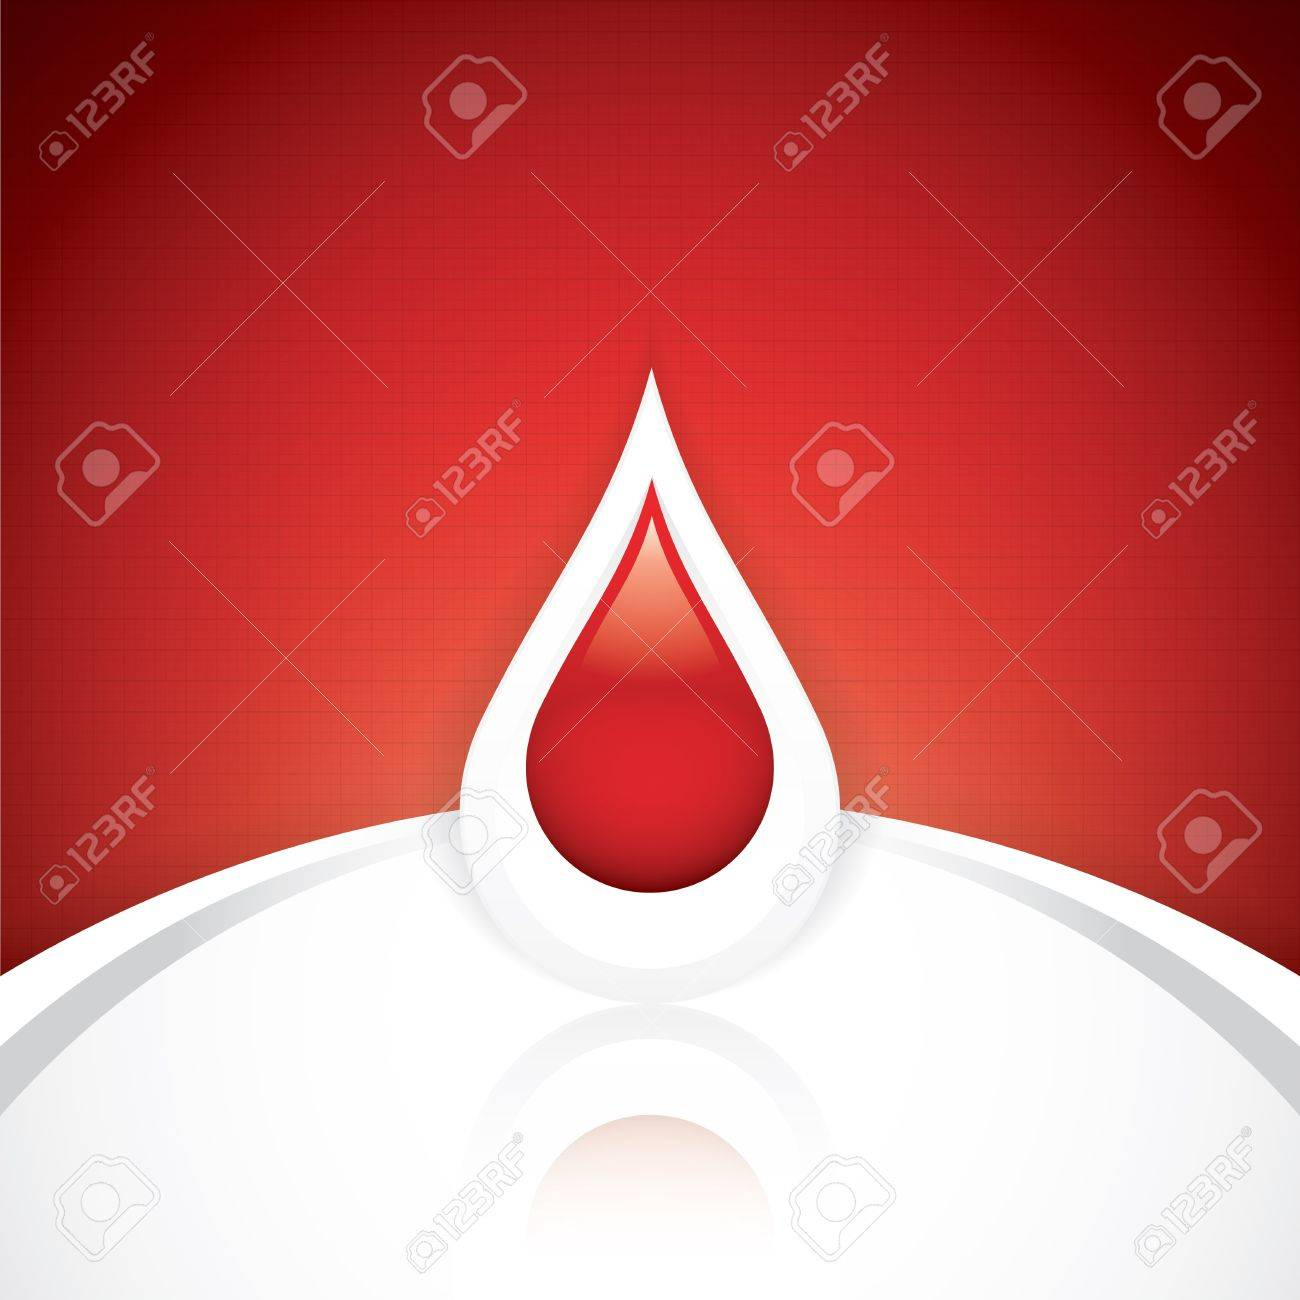 Blood donation  Medical background Stock Vector - 19791010